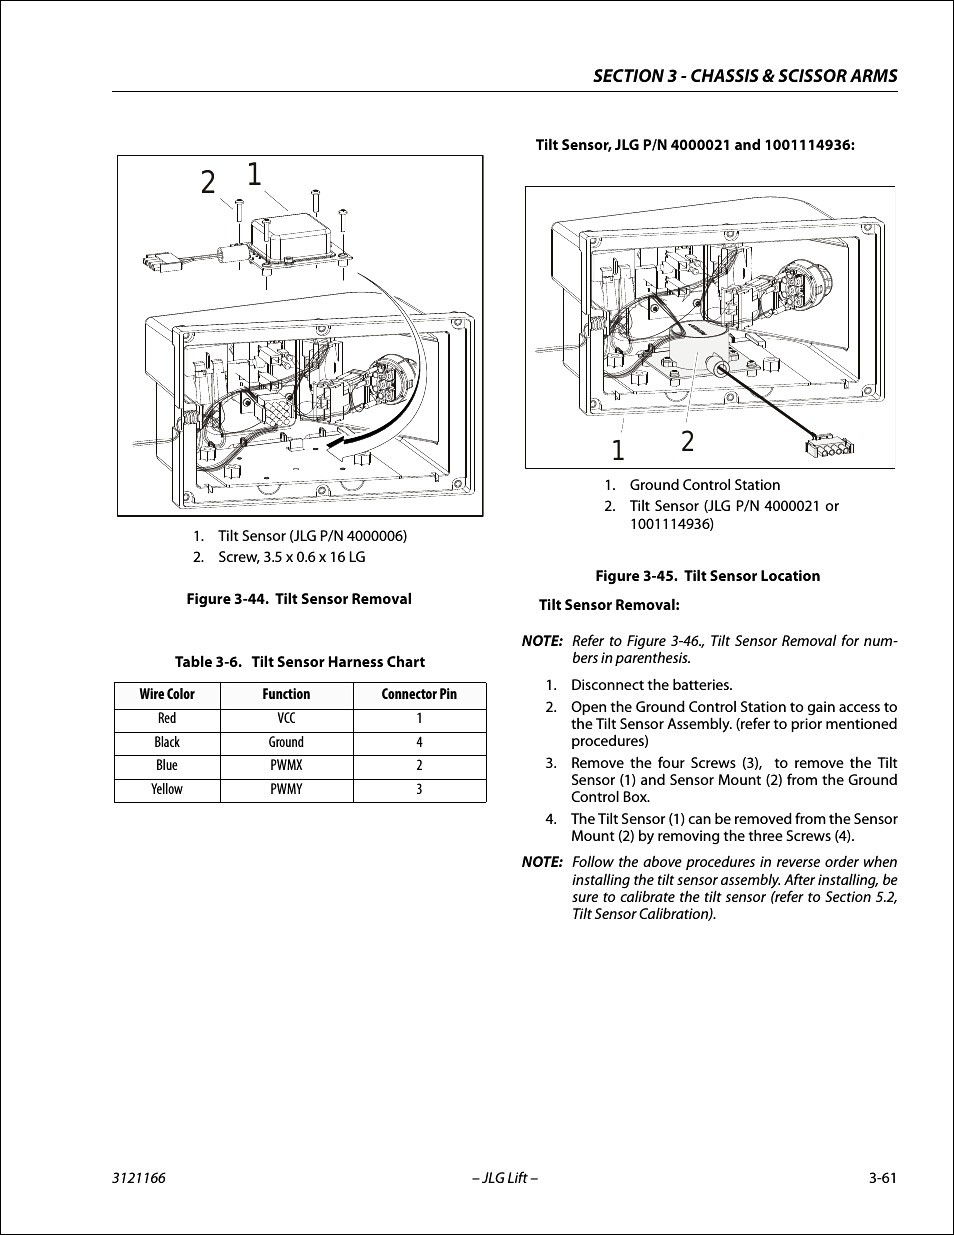 marklift manual scissors lift wiring diagram